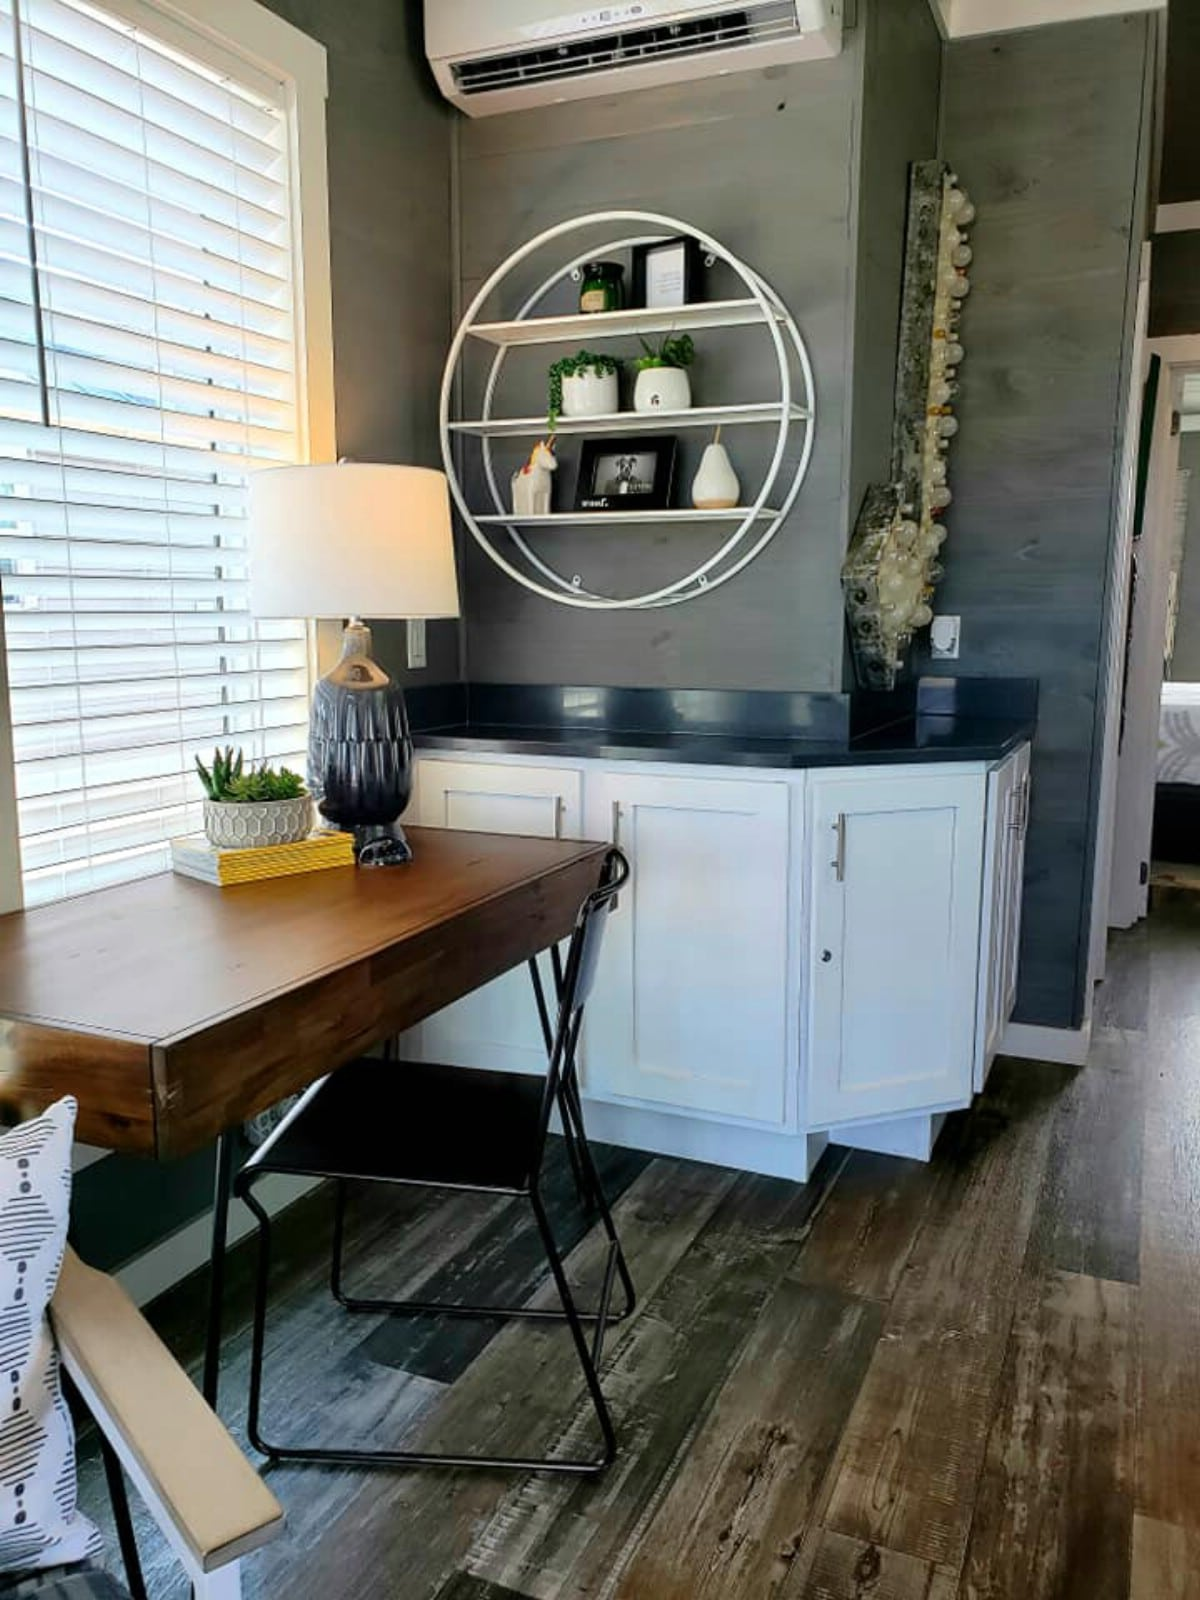 Dining table with round shelf on wall